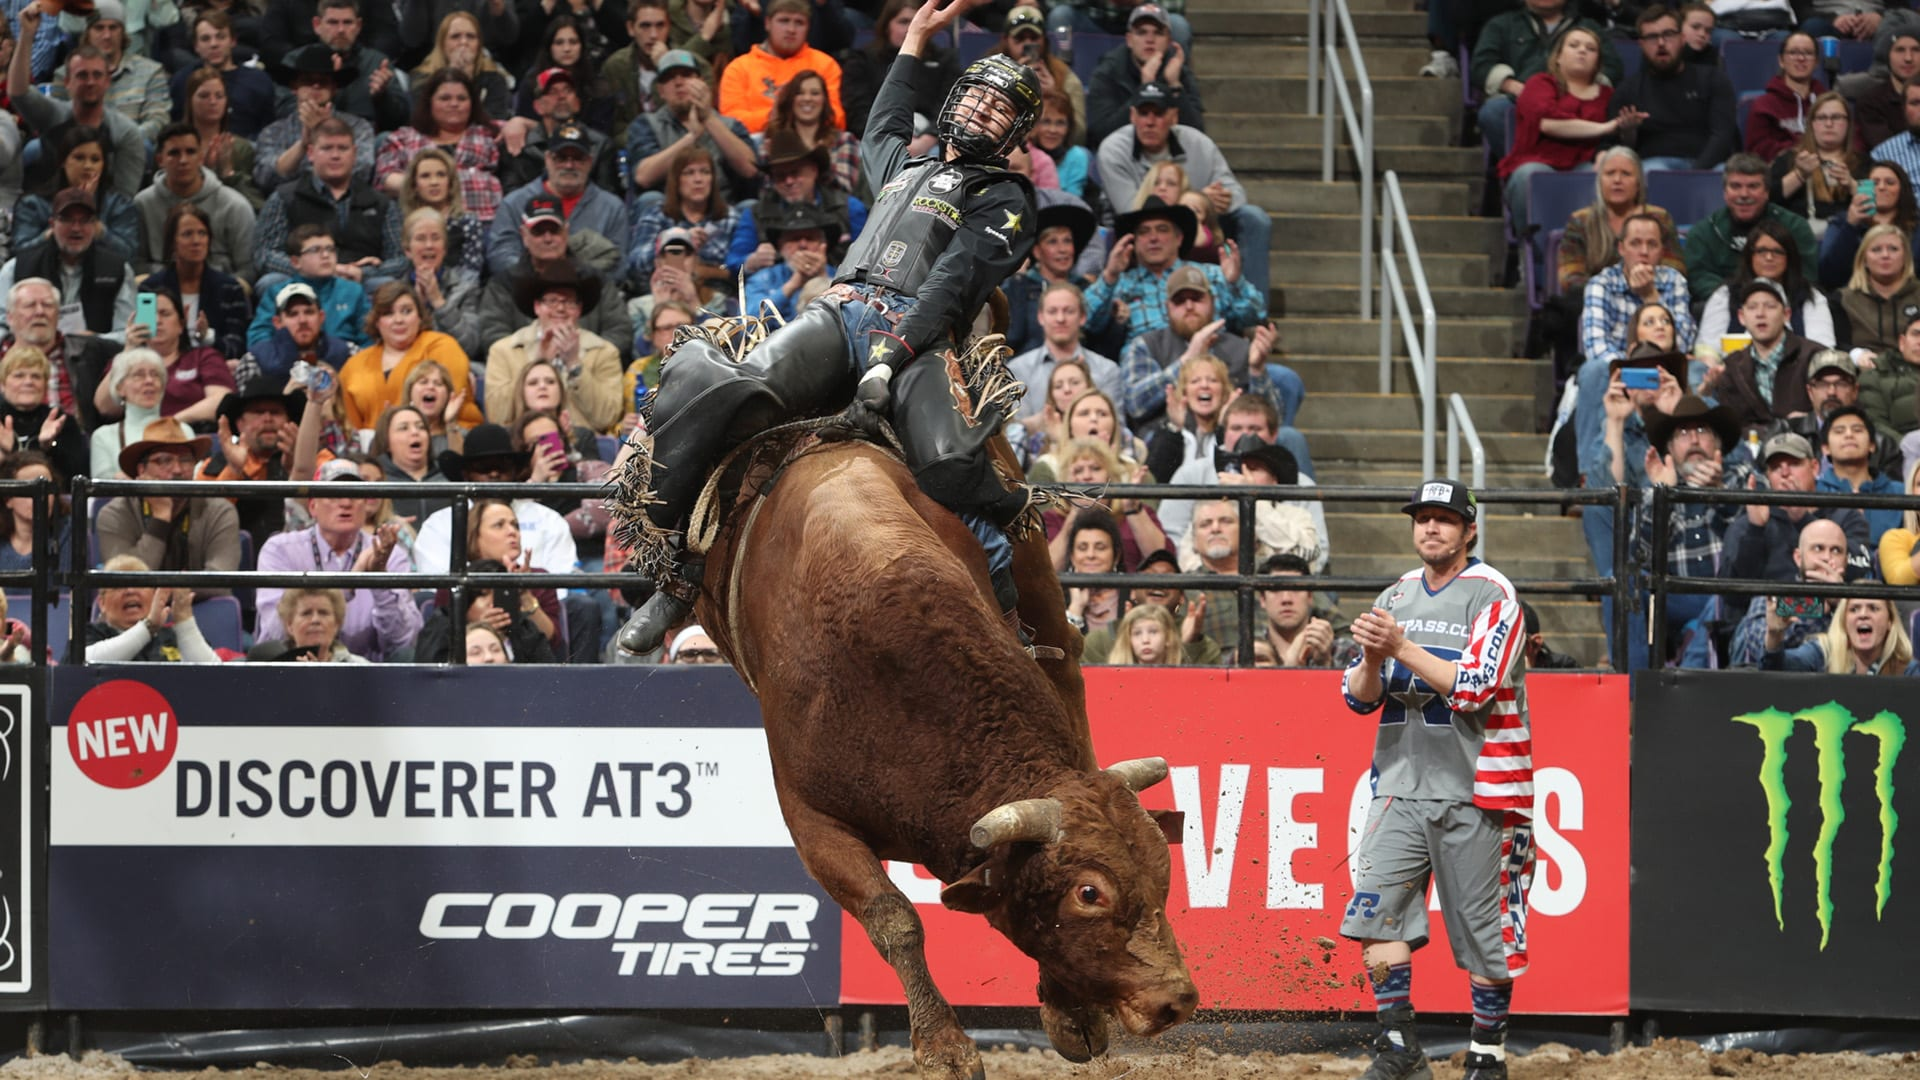 Jesse rides bull named in honor of Lowe for second-place finish